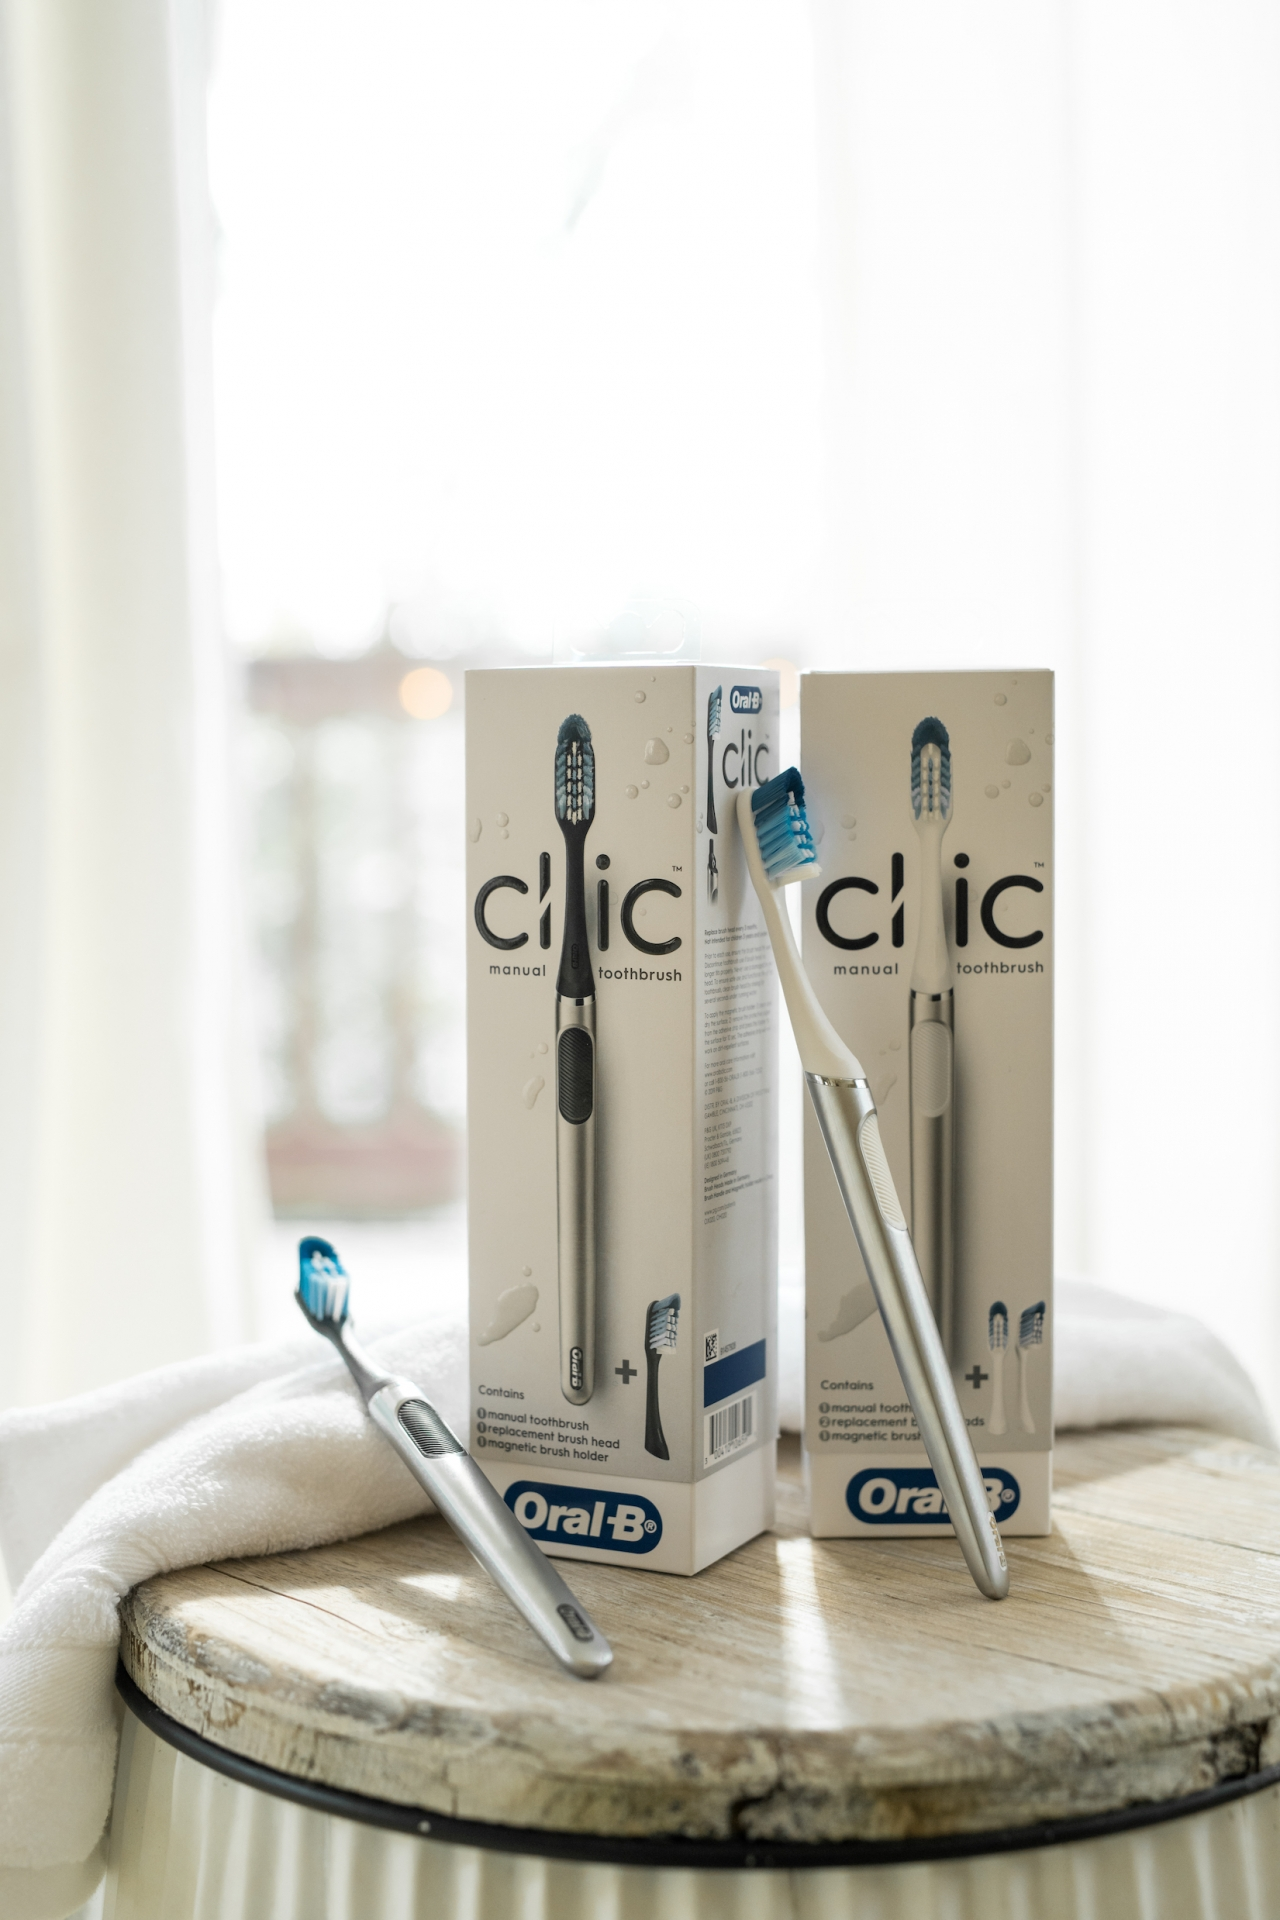 Oral-B Clic brushes